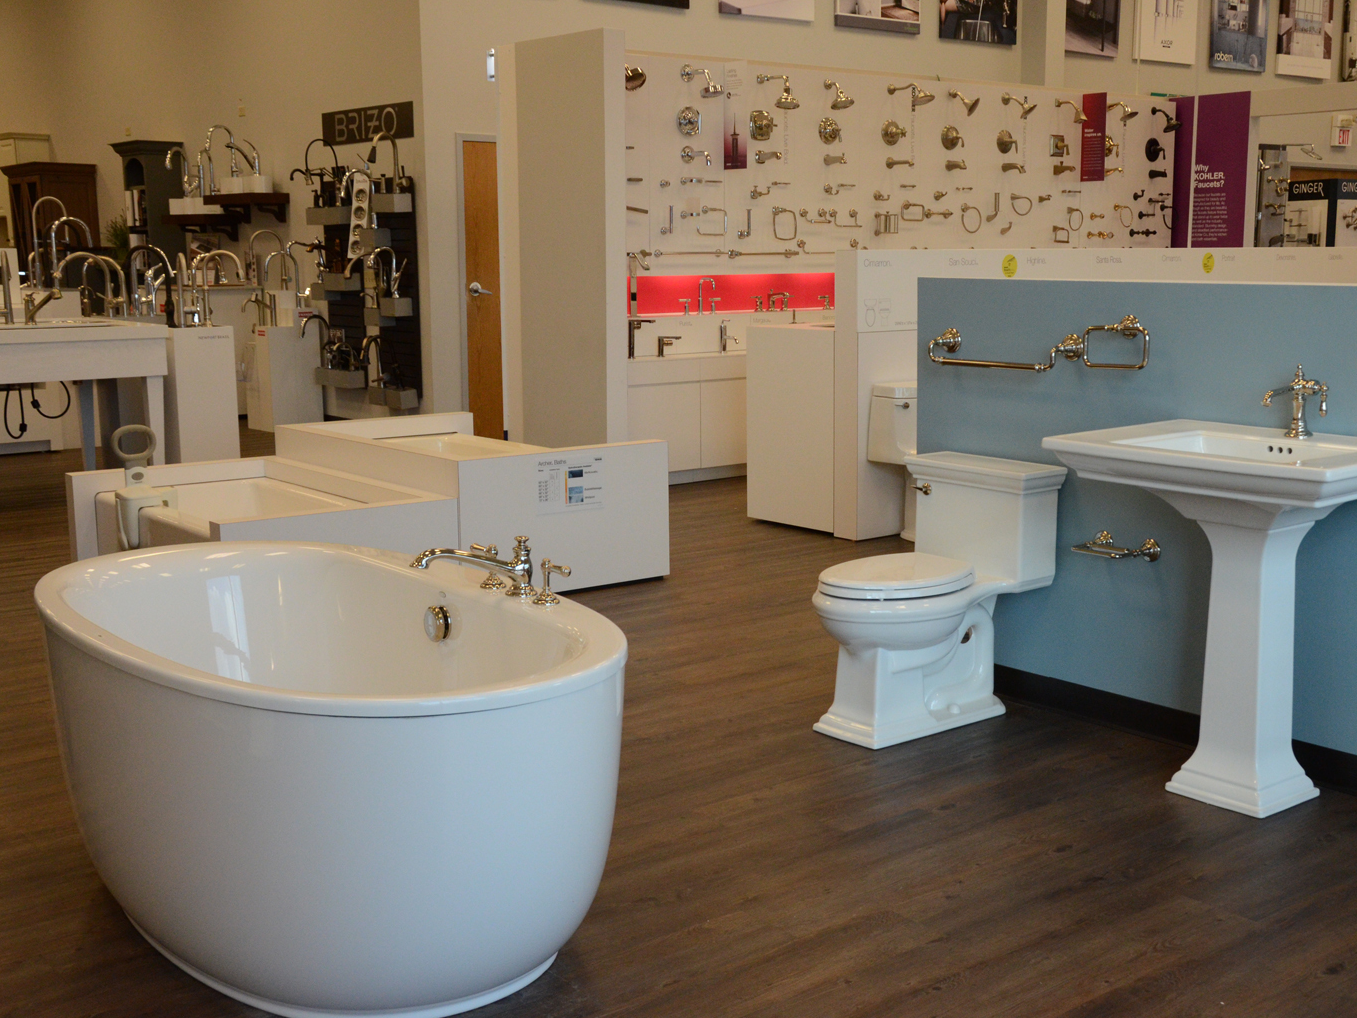 KOHLER Bathroom & Kitchen Products at Crawford Supply in Mokena, IL